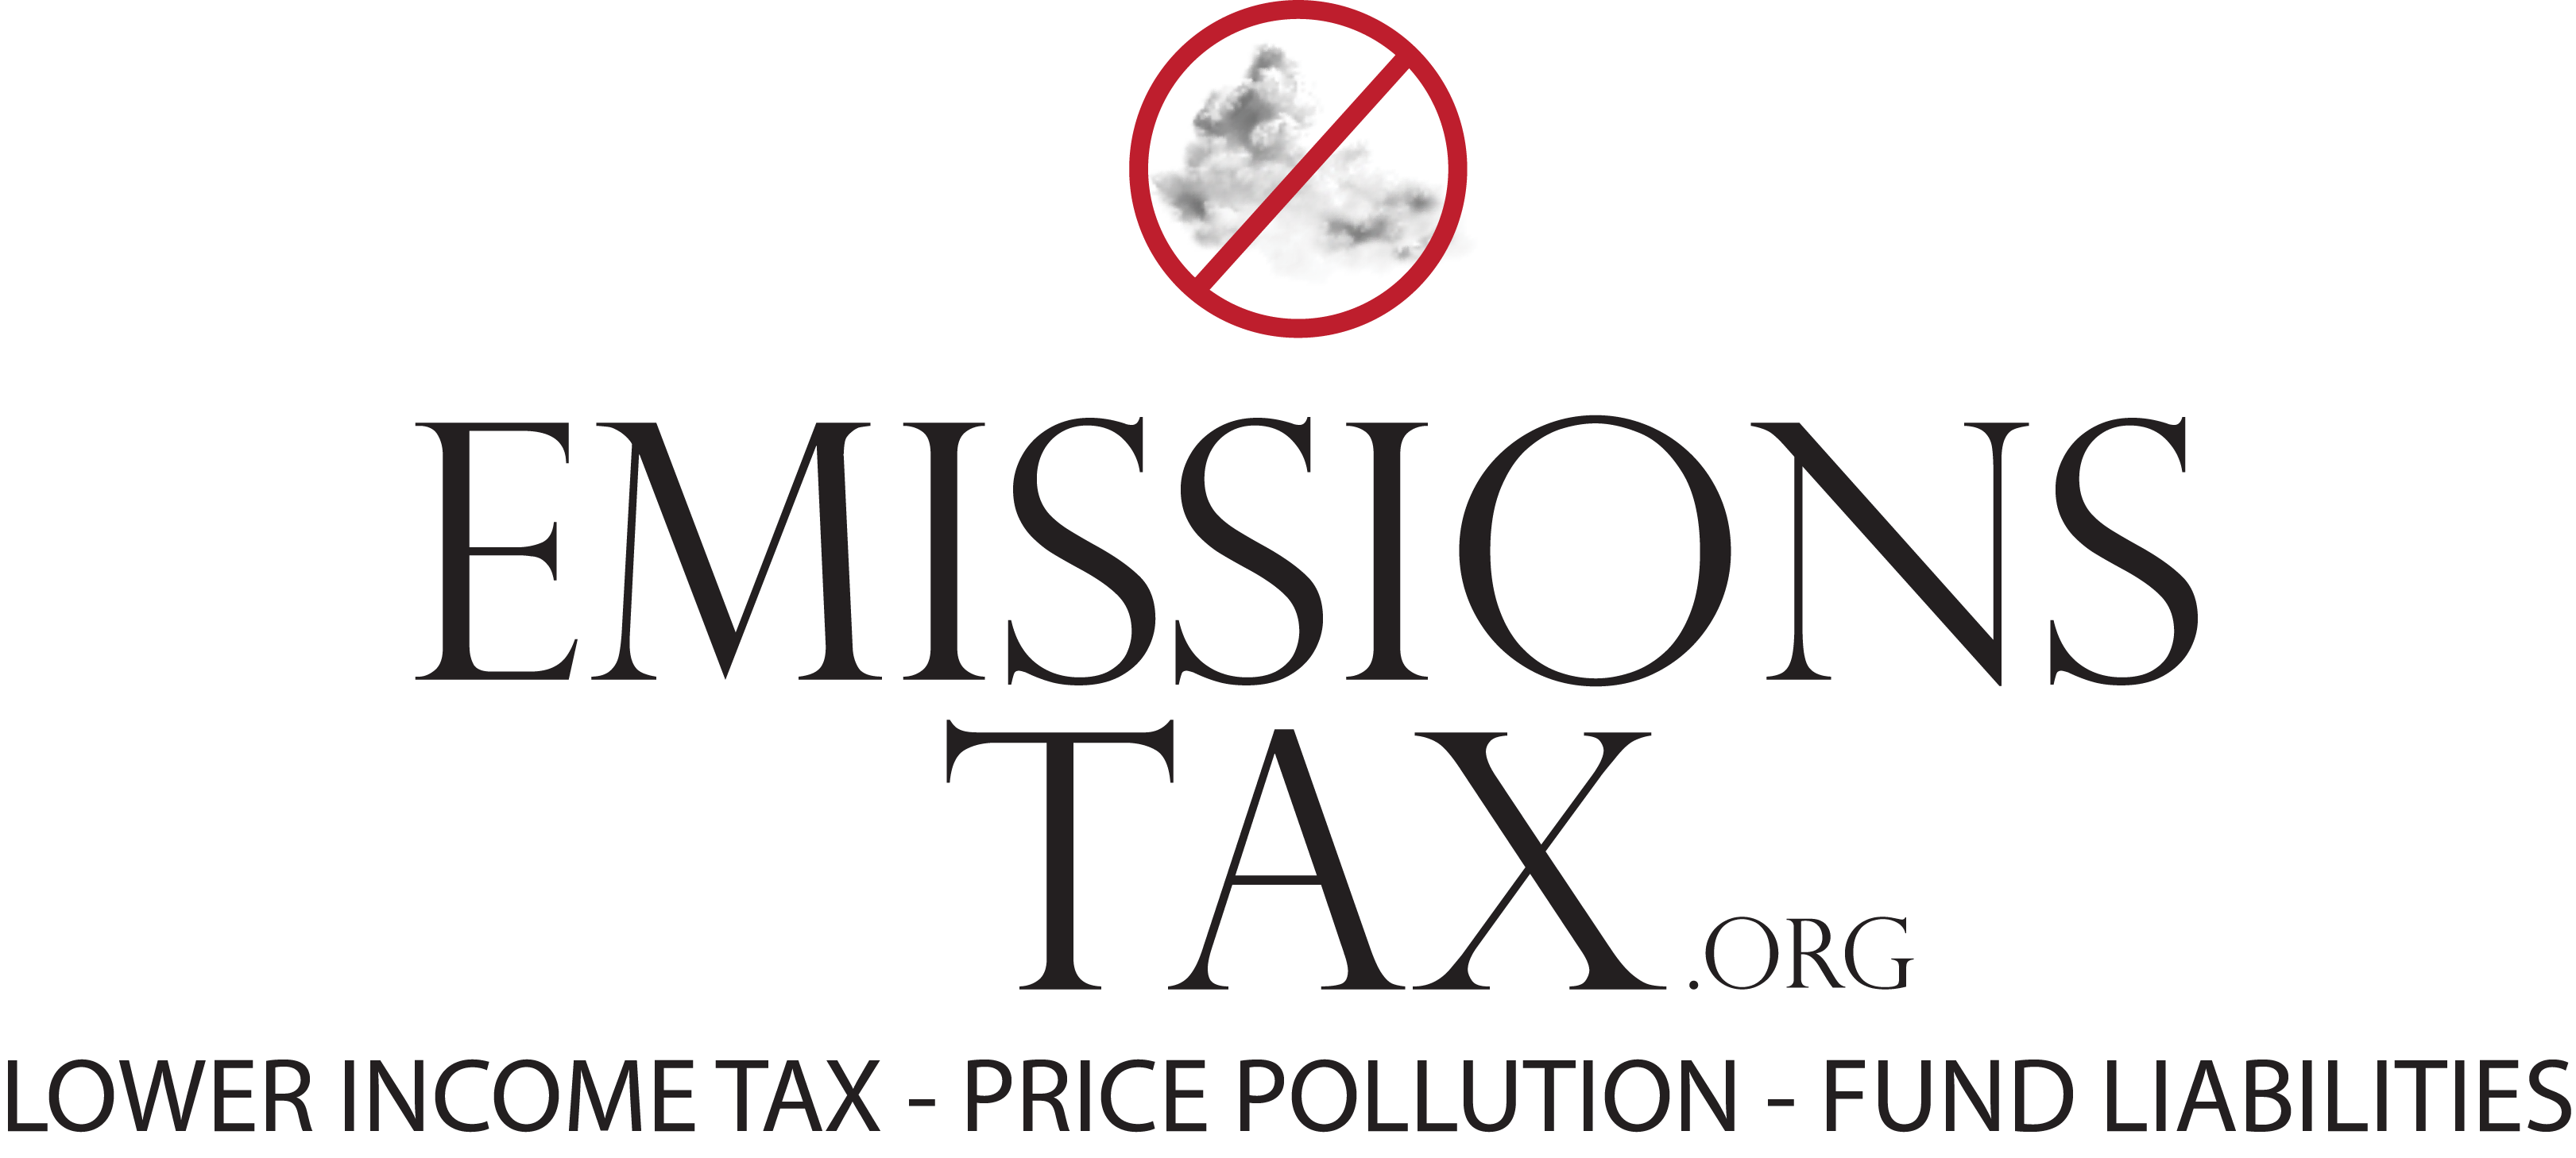 EmissionsTax - Lower Income Tax, Price Pollution, Fund Liabilities